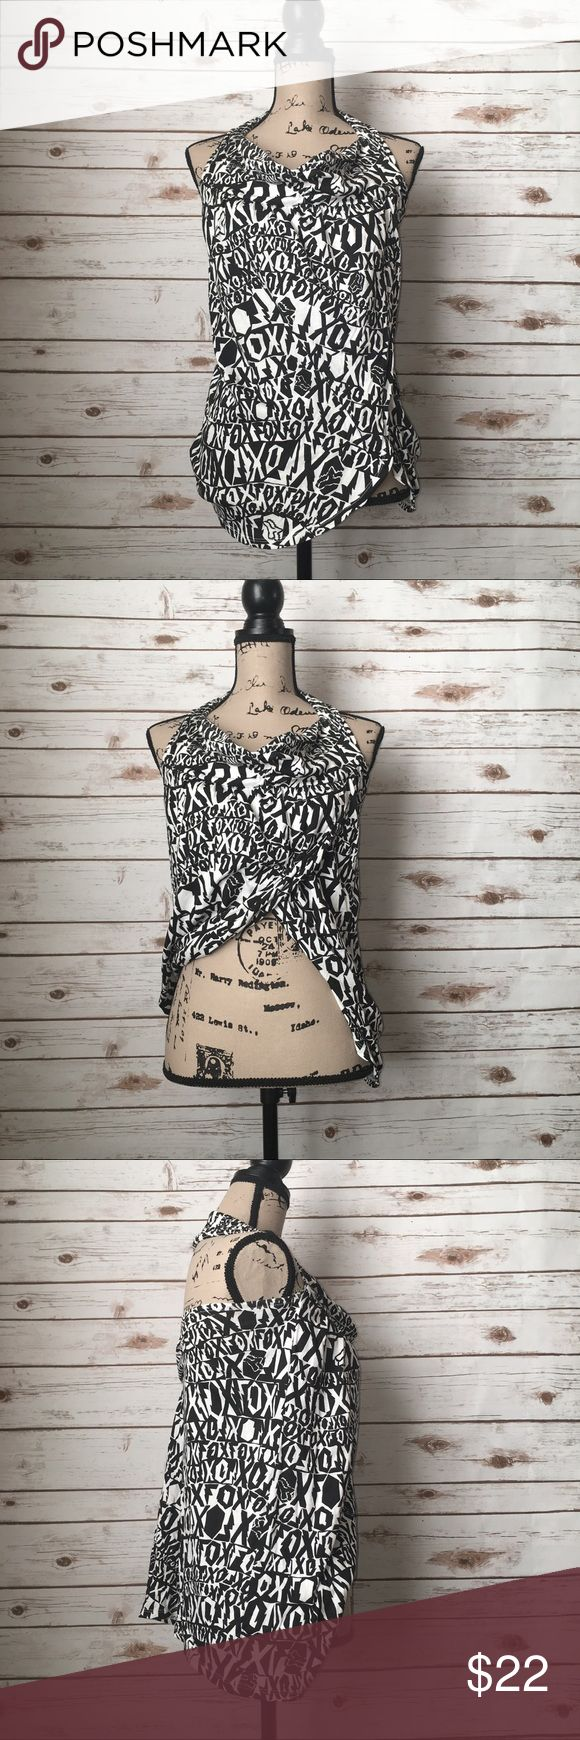 "Fox Racing Logo Halter Black/White Top Size S Size S   Armpit to armpit: 12""   Length: 23""  Fabric: 55% Cotton 45% Modal   Fox Racing logo print   Black/white   Wrap around Blouse/top/shirt  Halter/Neck   Open upper back Fox Tops"